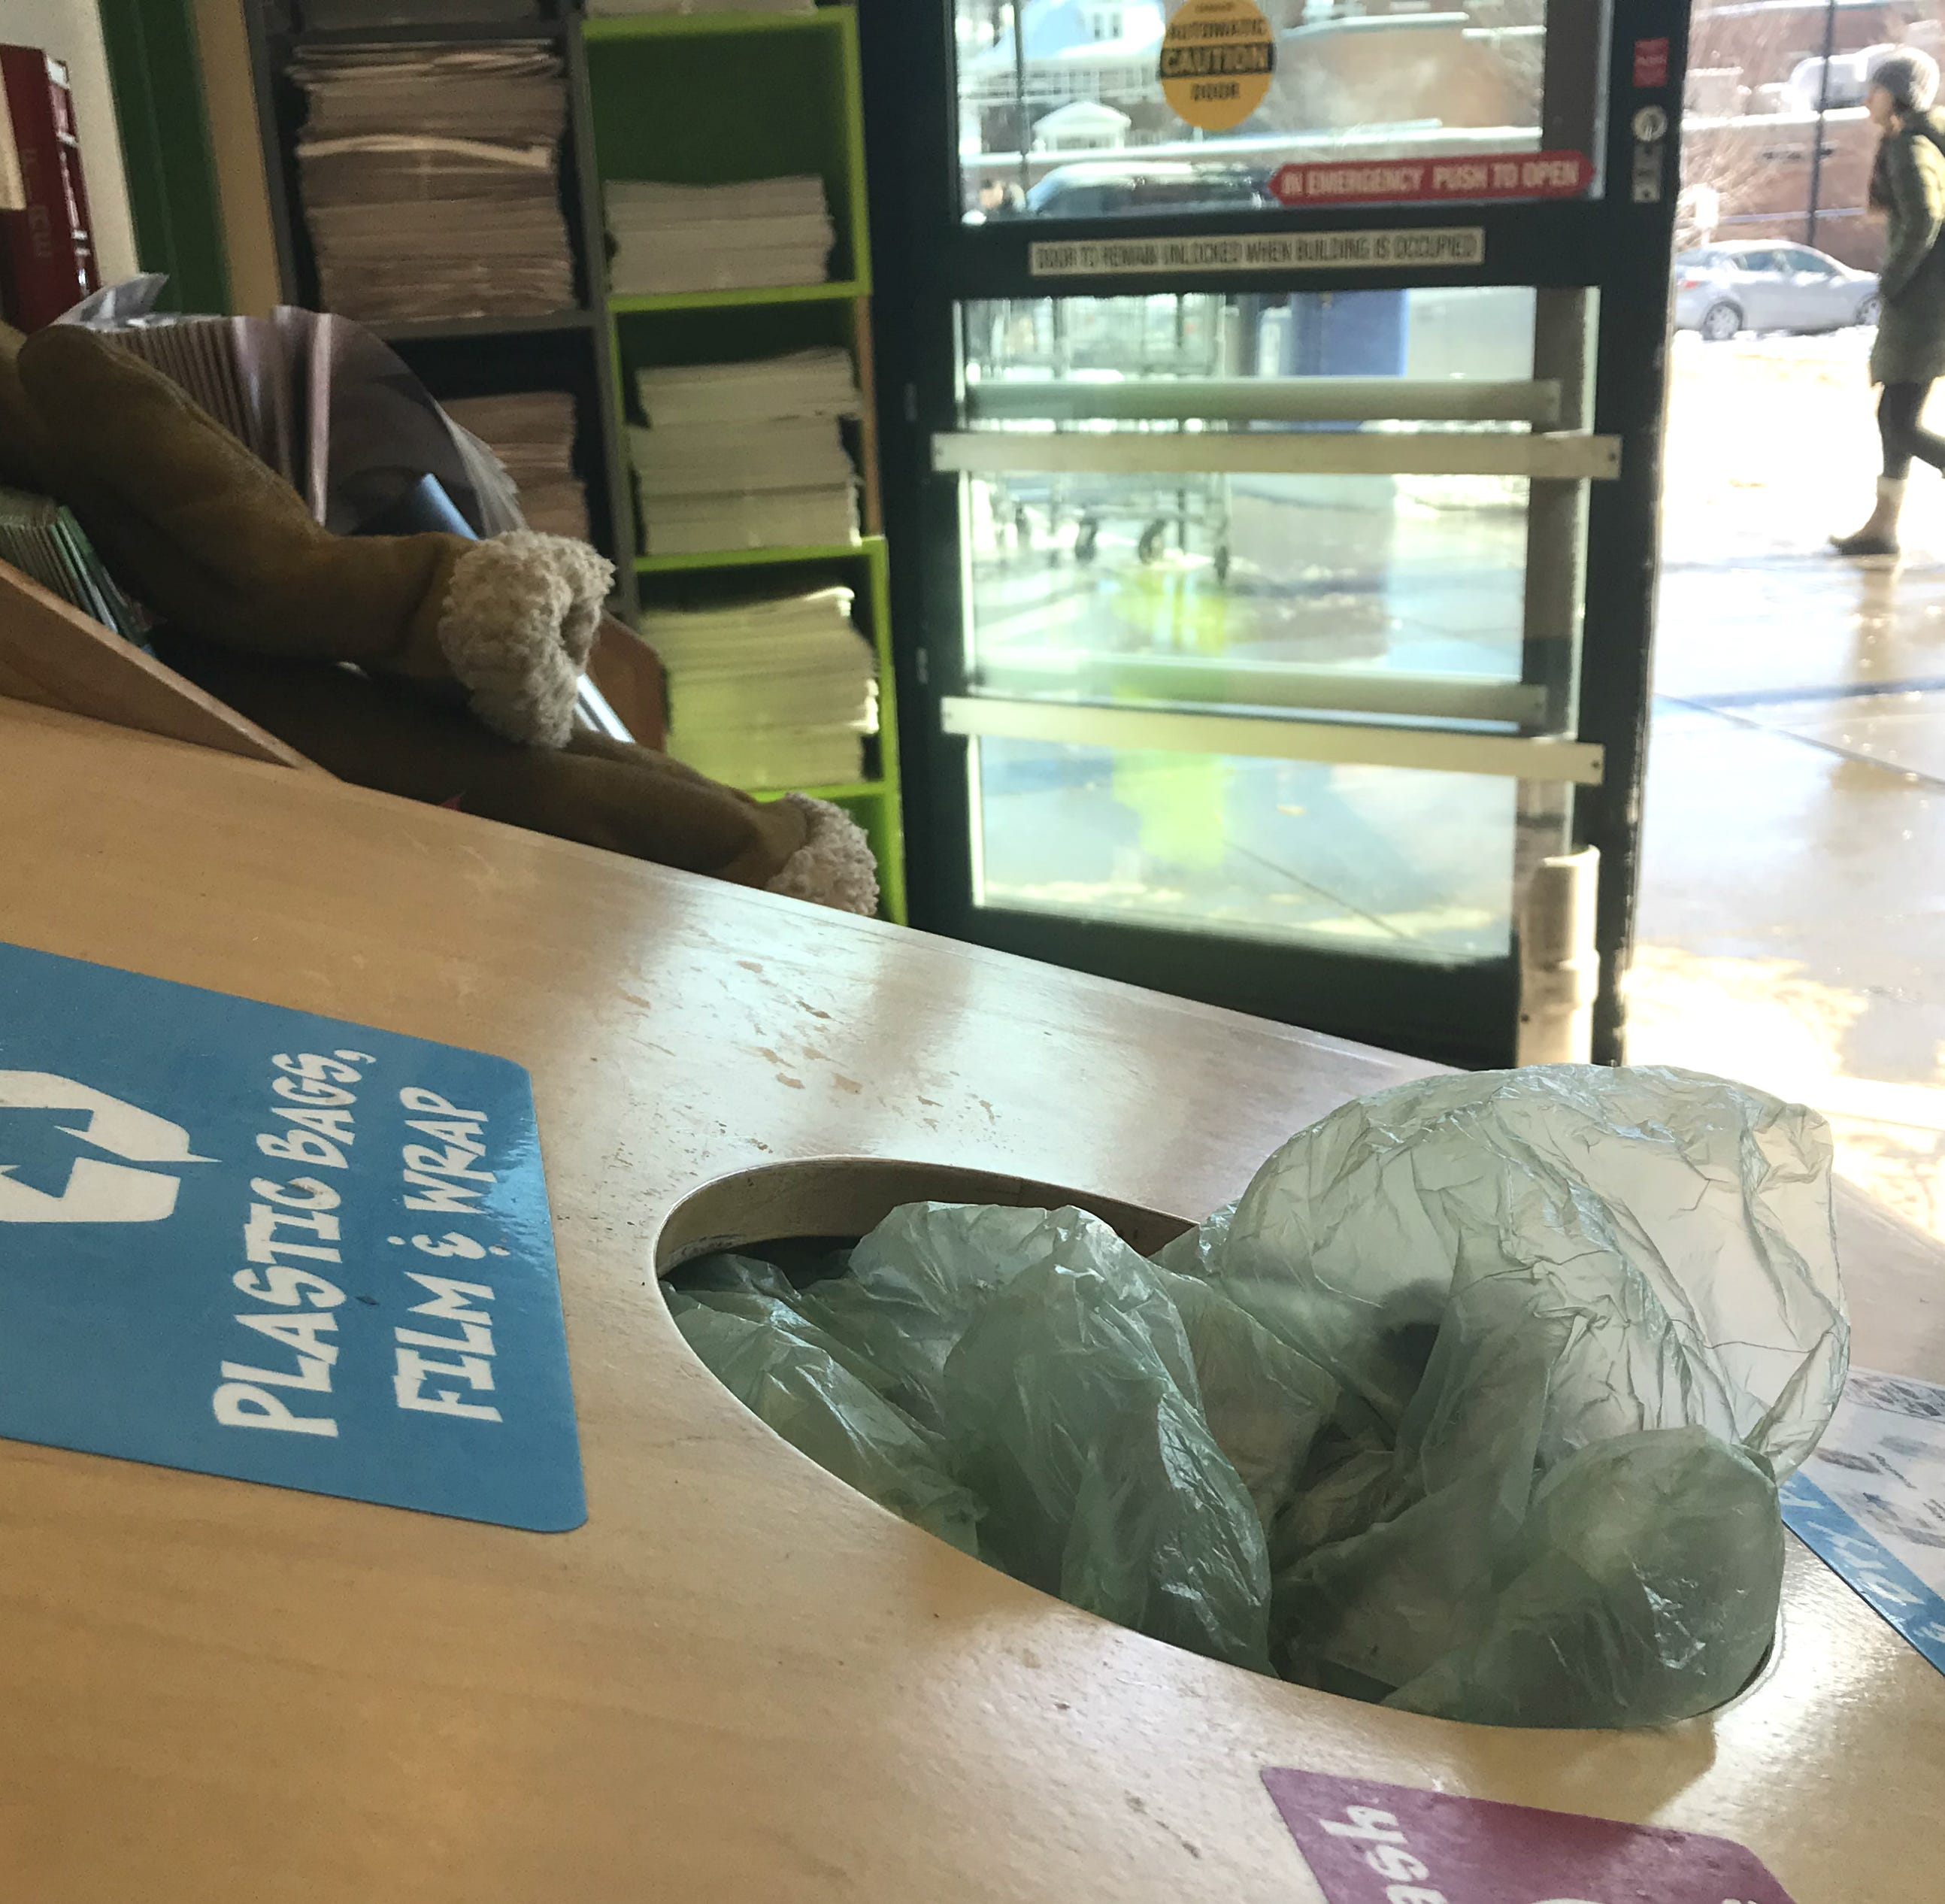 Burlington considers ban on plastic shopping bags — would it work?